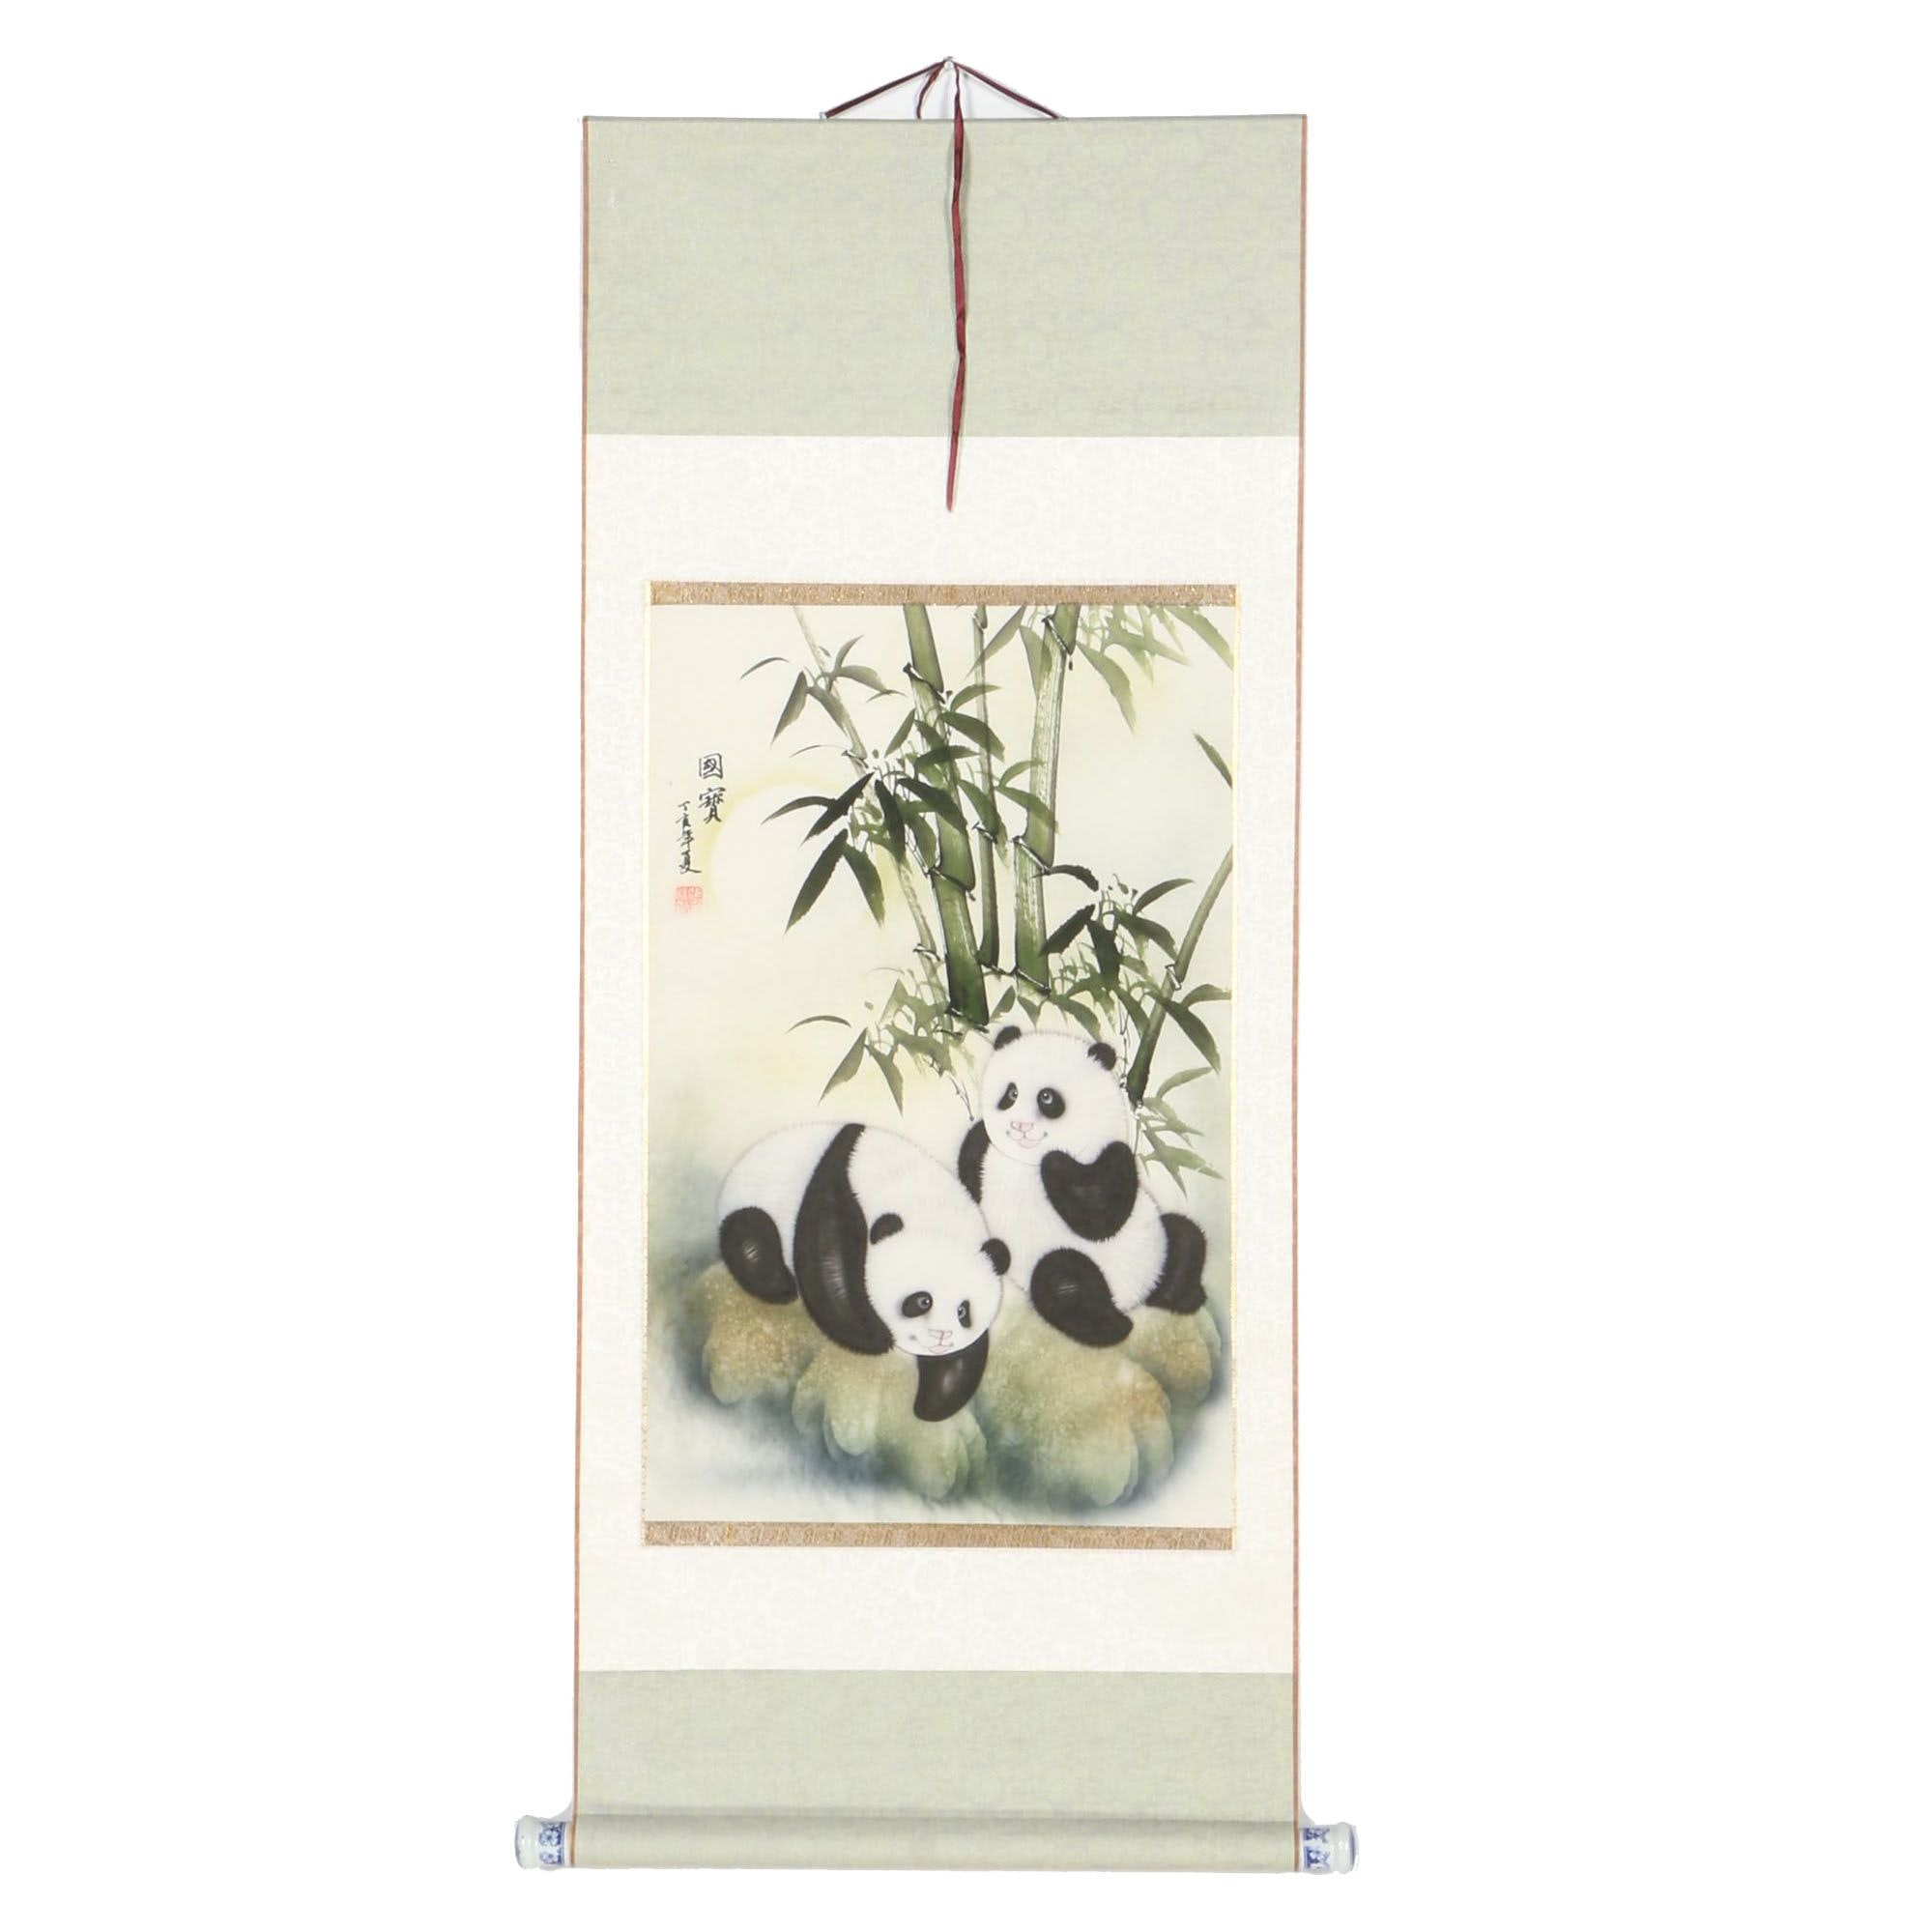 Chinese Airbrush and Watercolor Hanging Scroll Painting of Pandas